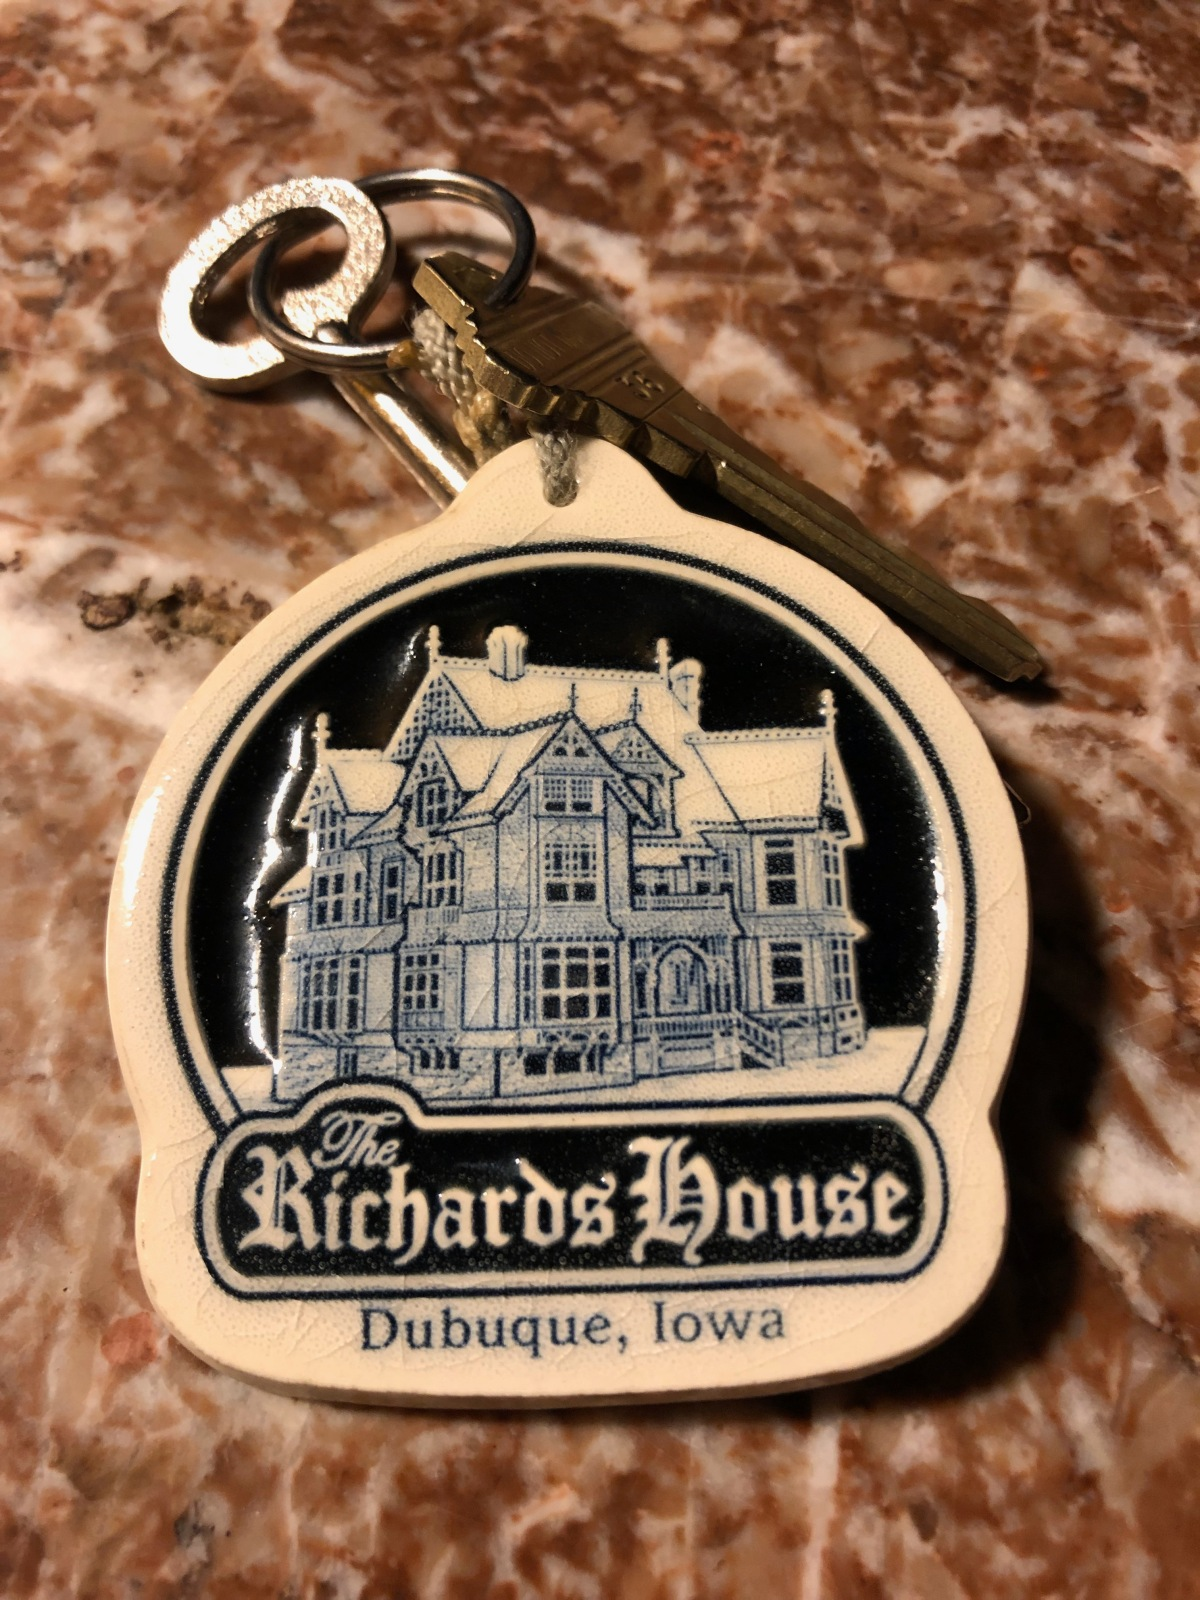 Better to picture the key chain of the outside than the actual photo.